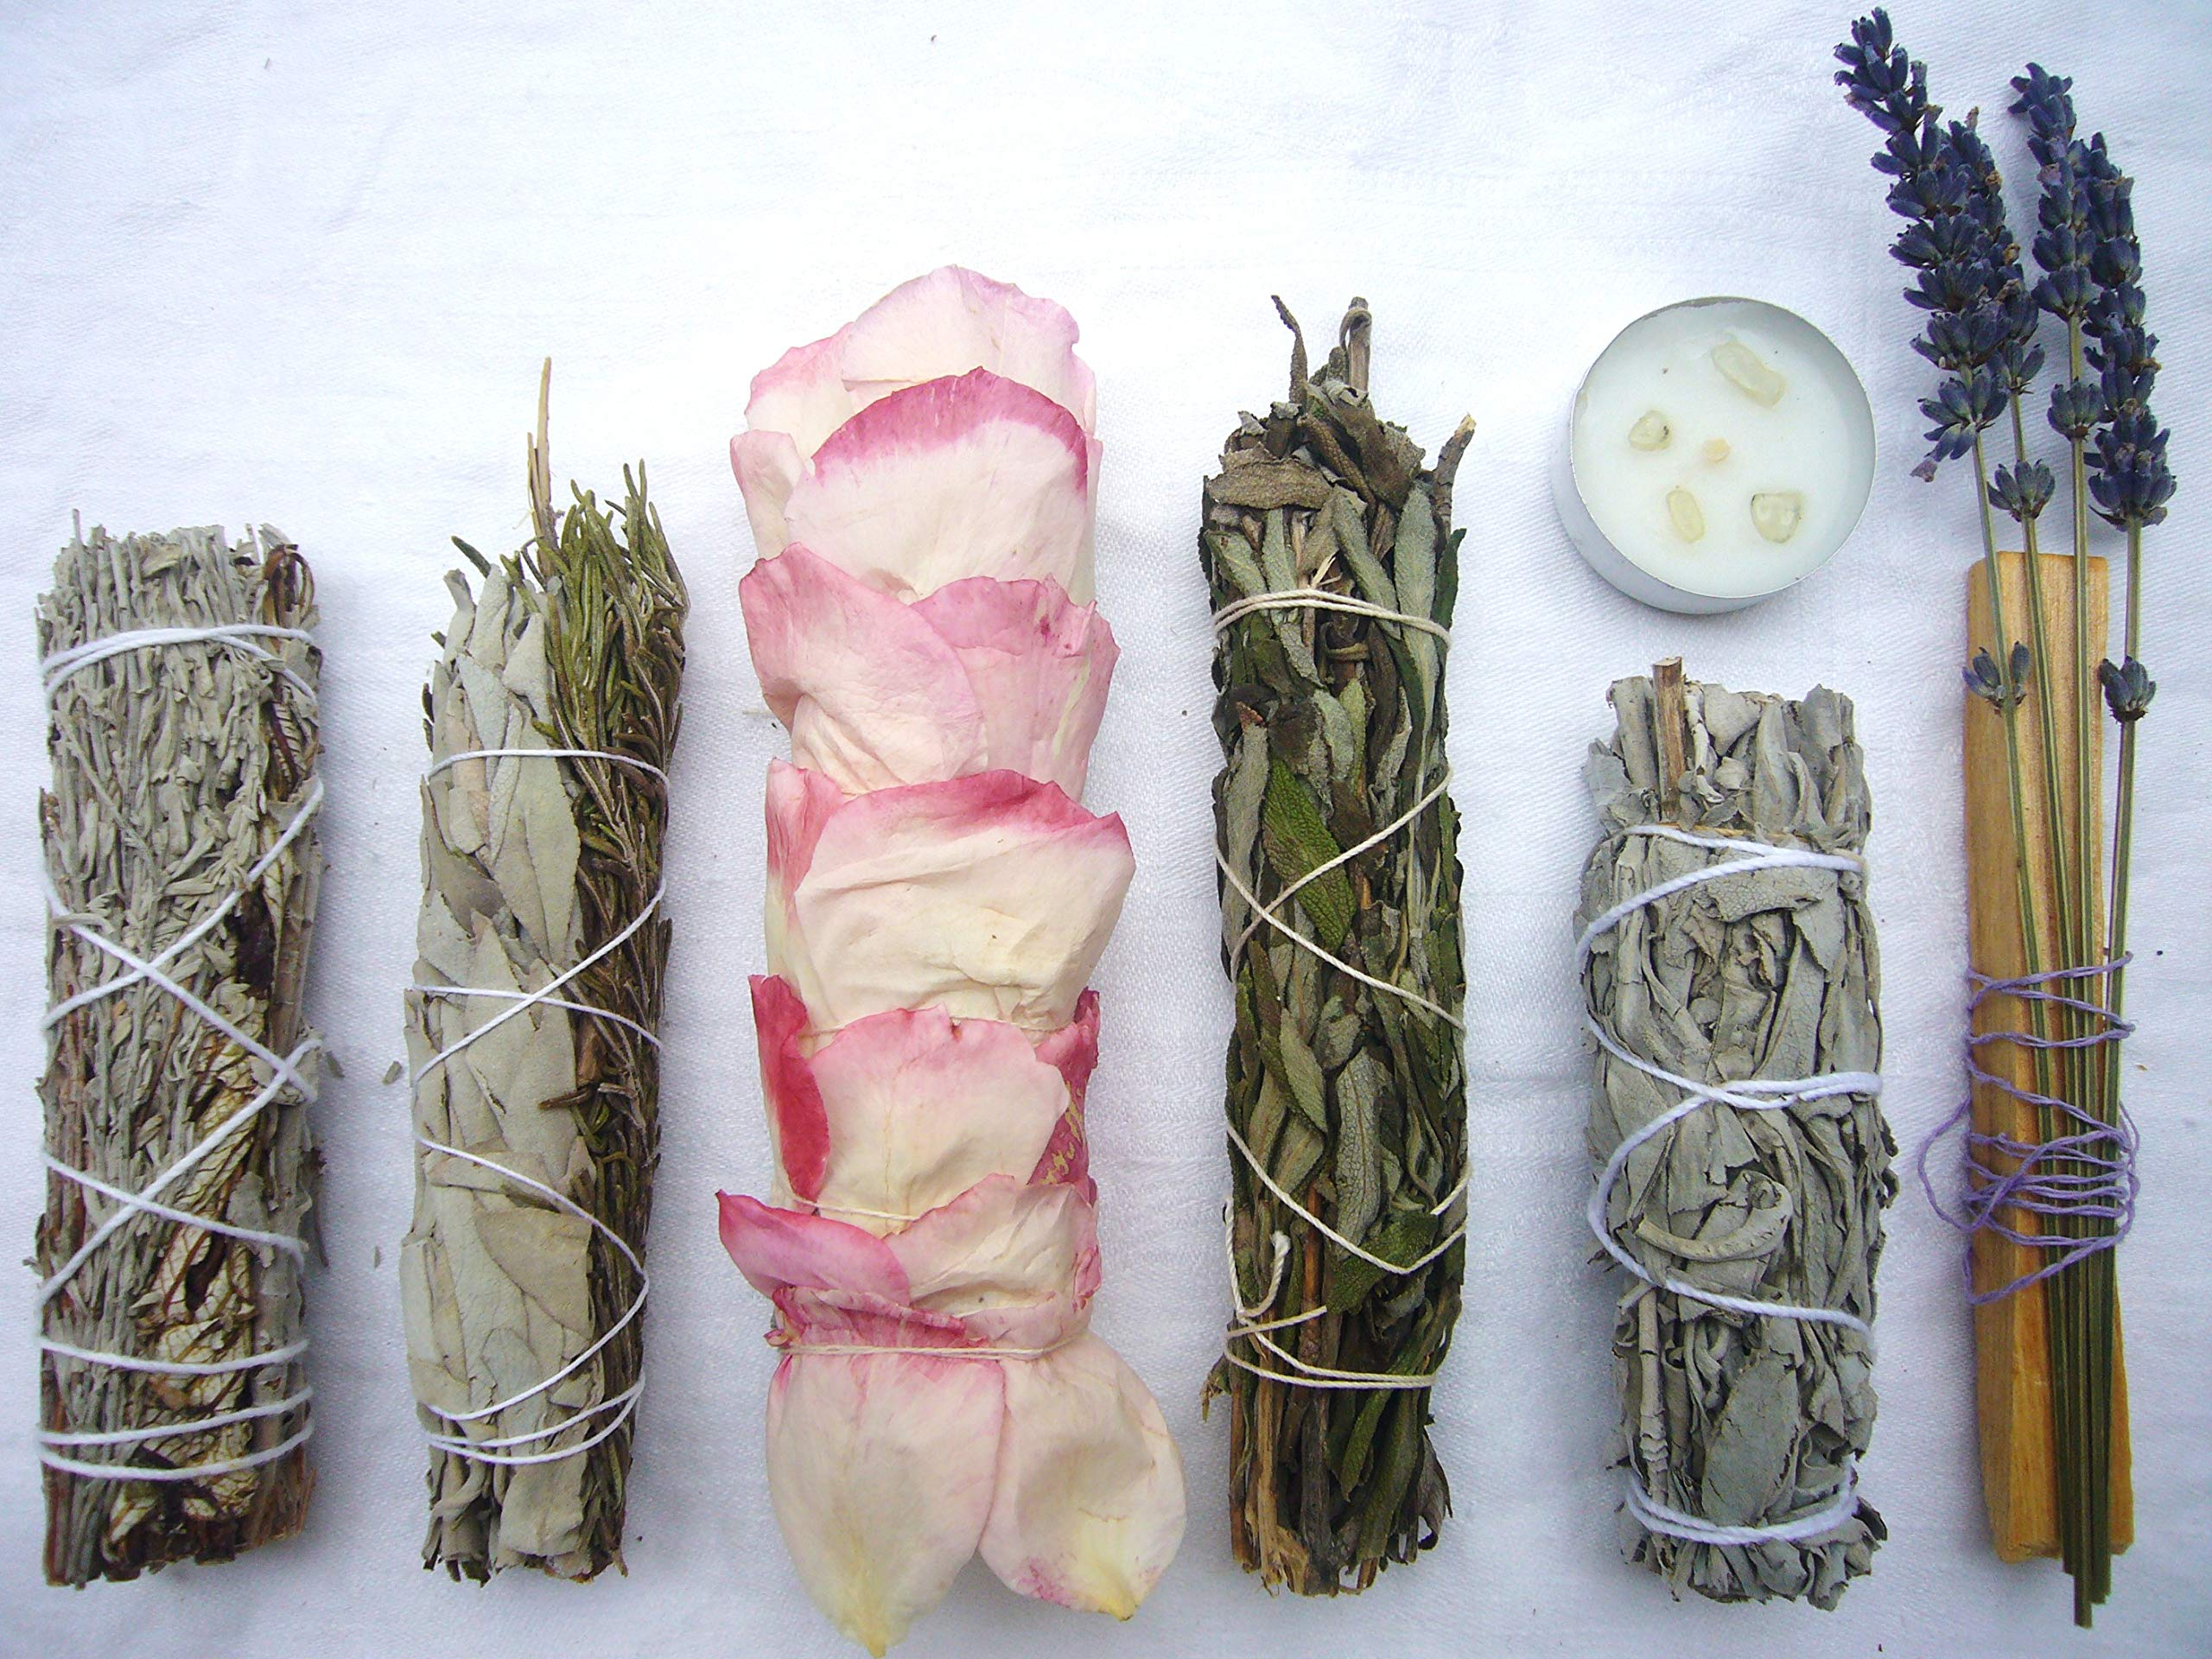 L'AMOUR yes! Luxury Smudge Kit | Rose White Sage, Rosemary, Lavender Smudge Stick, Yerba Santa & Blue Sage, White Sage, Palo Santo, Crystal Candle | Home Cleansing, Blessing, Manifesting, Rituals by L'AMOUR yes! (Image #7)